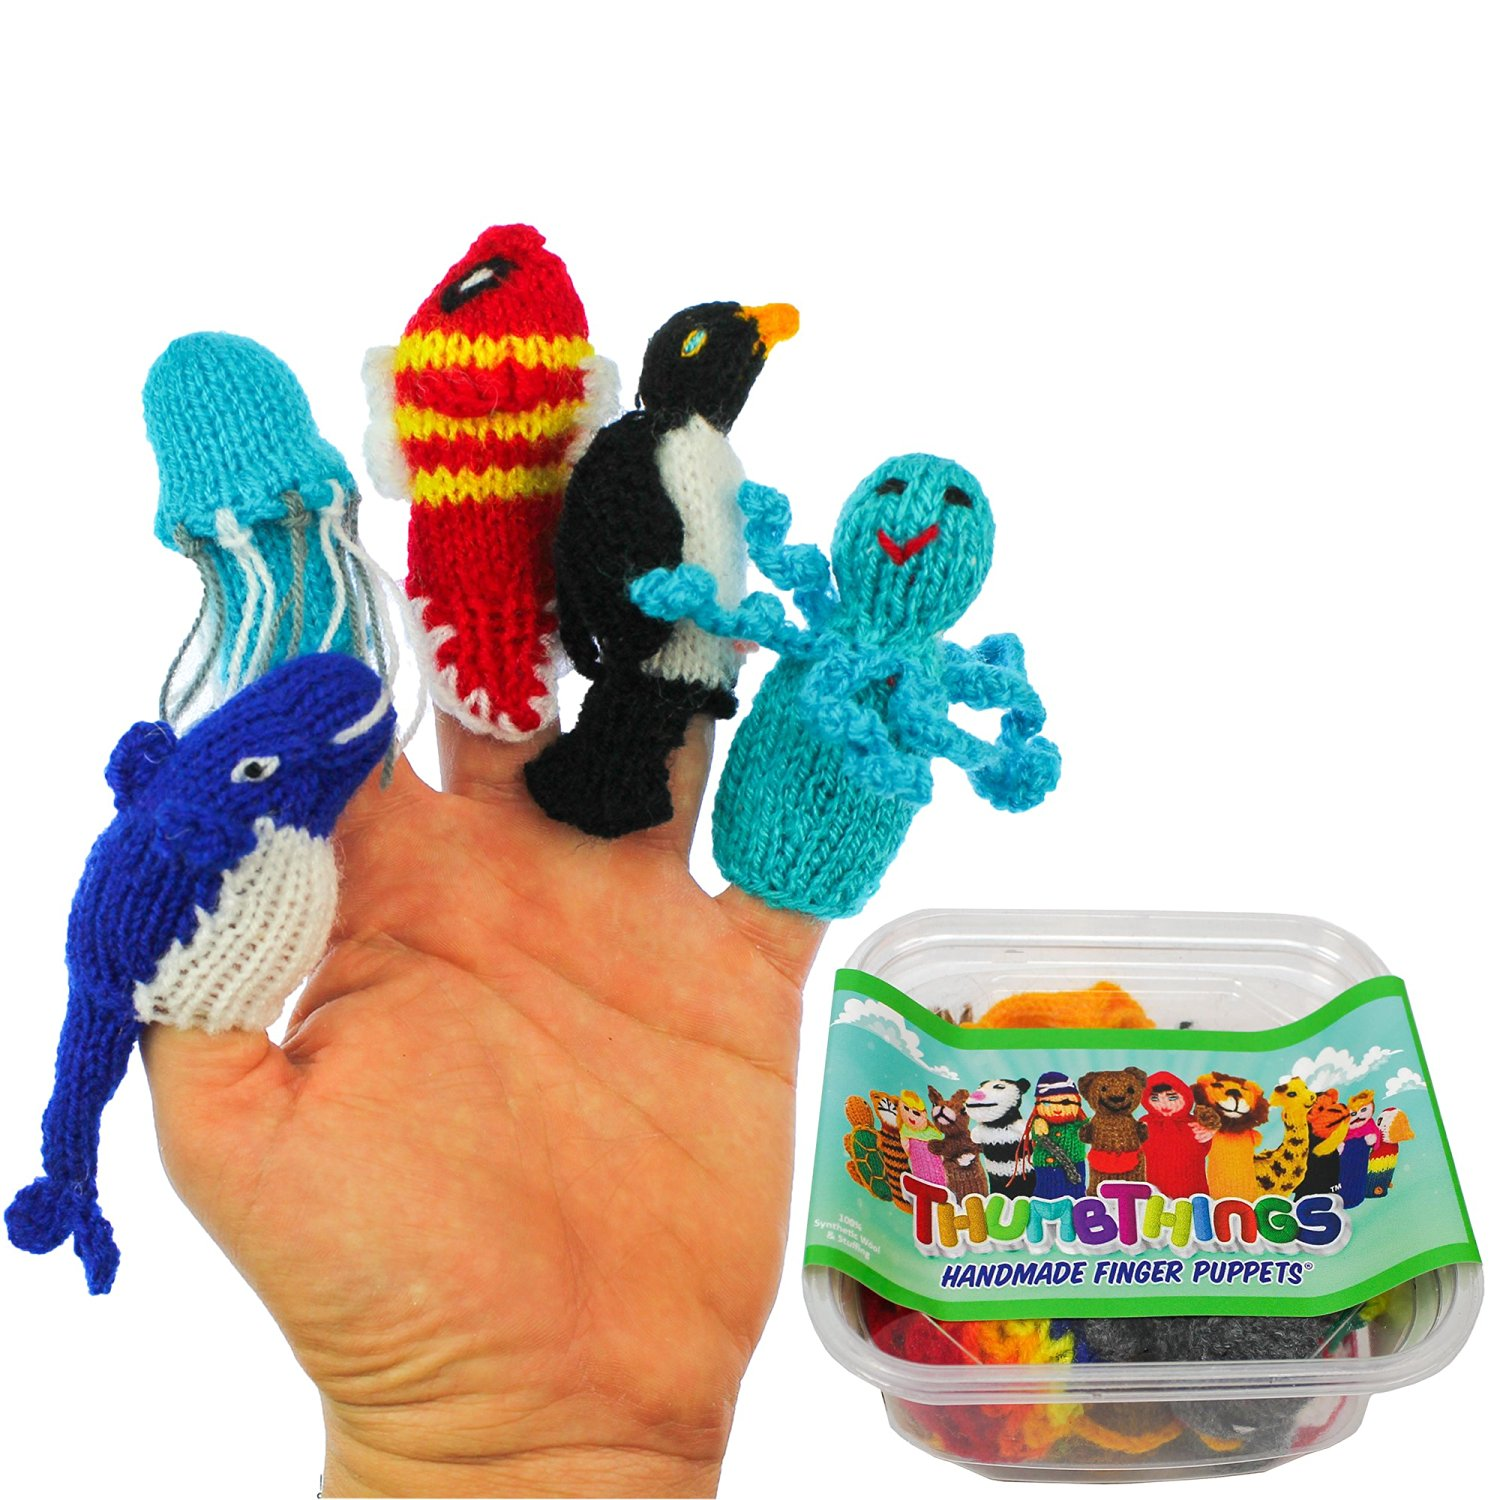 ThumbThings Handmade Finger Puppets Set of 5: Blue Whale, Jellyfish, Clown Fish, Penguin, Octopus